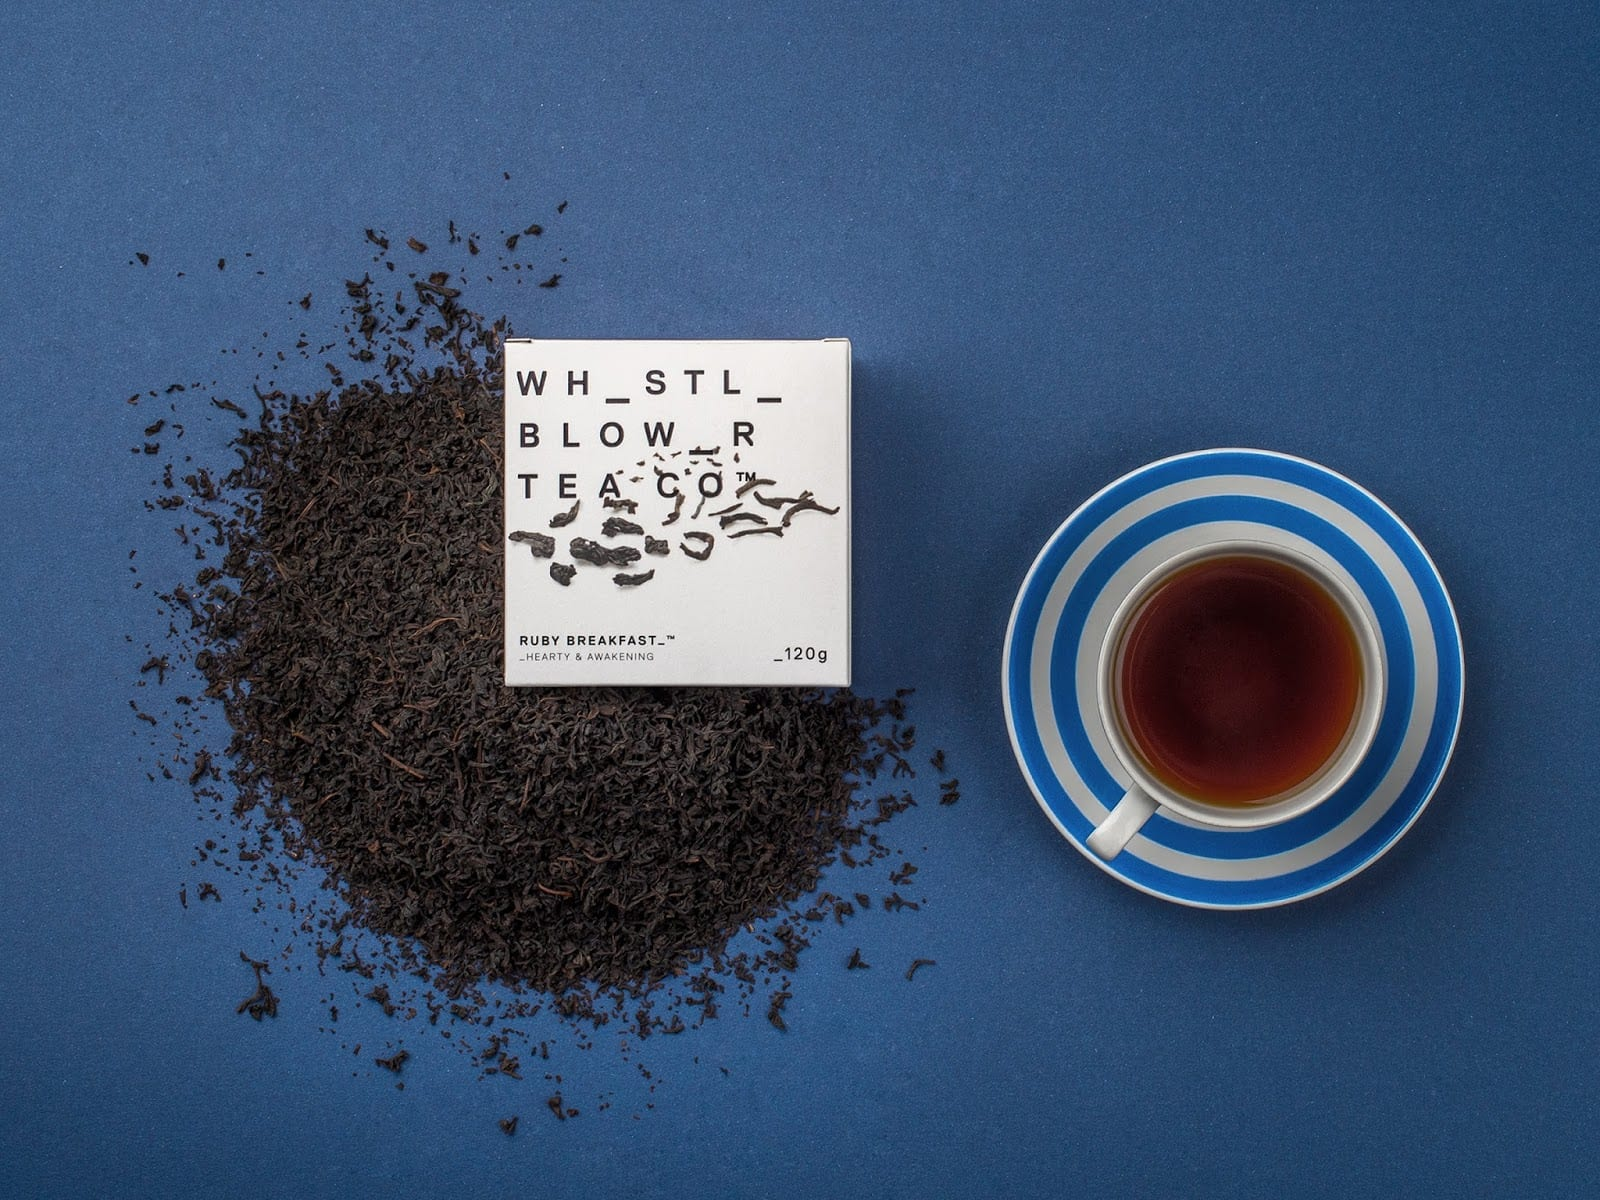 2 BlackSquidDesign Whistle Blower Tea Co pack01 - Ach, tie obaly – Whistle Blower Tea Co.